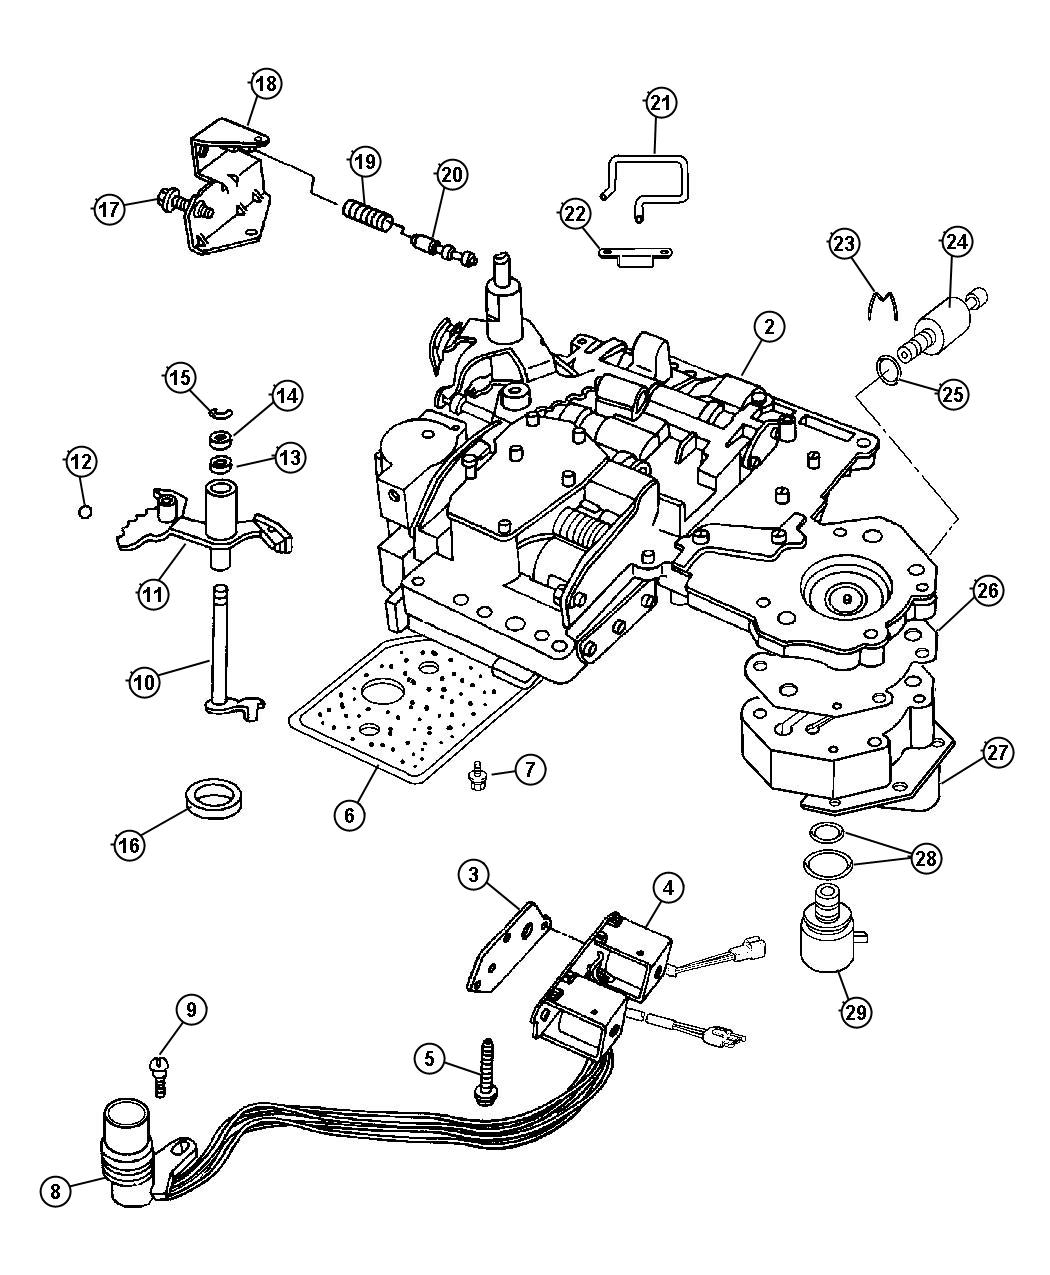 Dodge Transmission Parts Diagram 2001 Dodge Dakota Parts